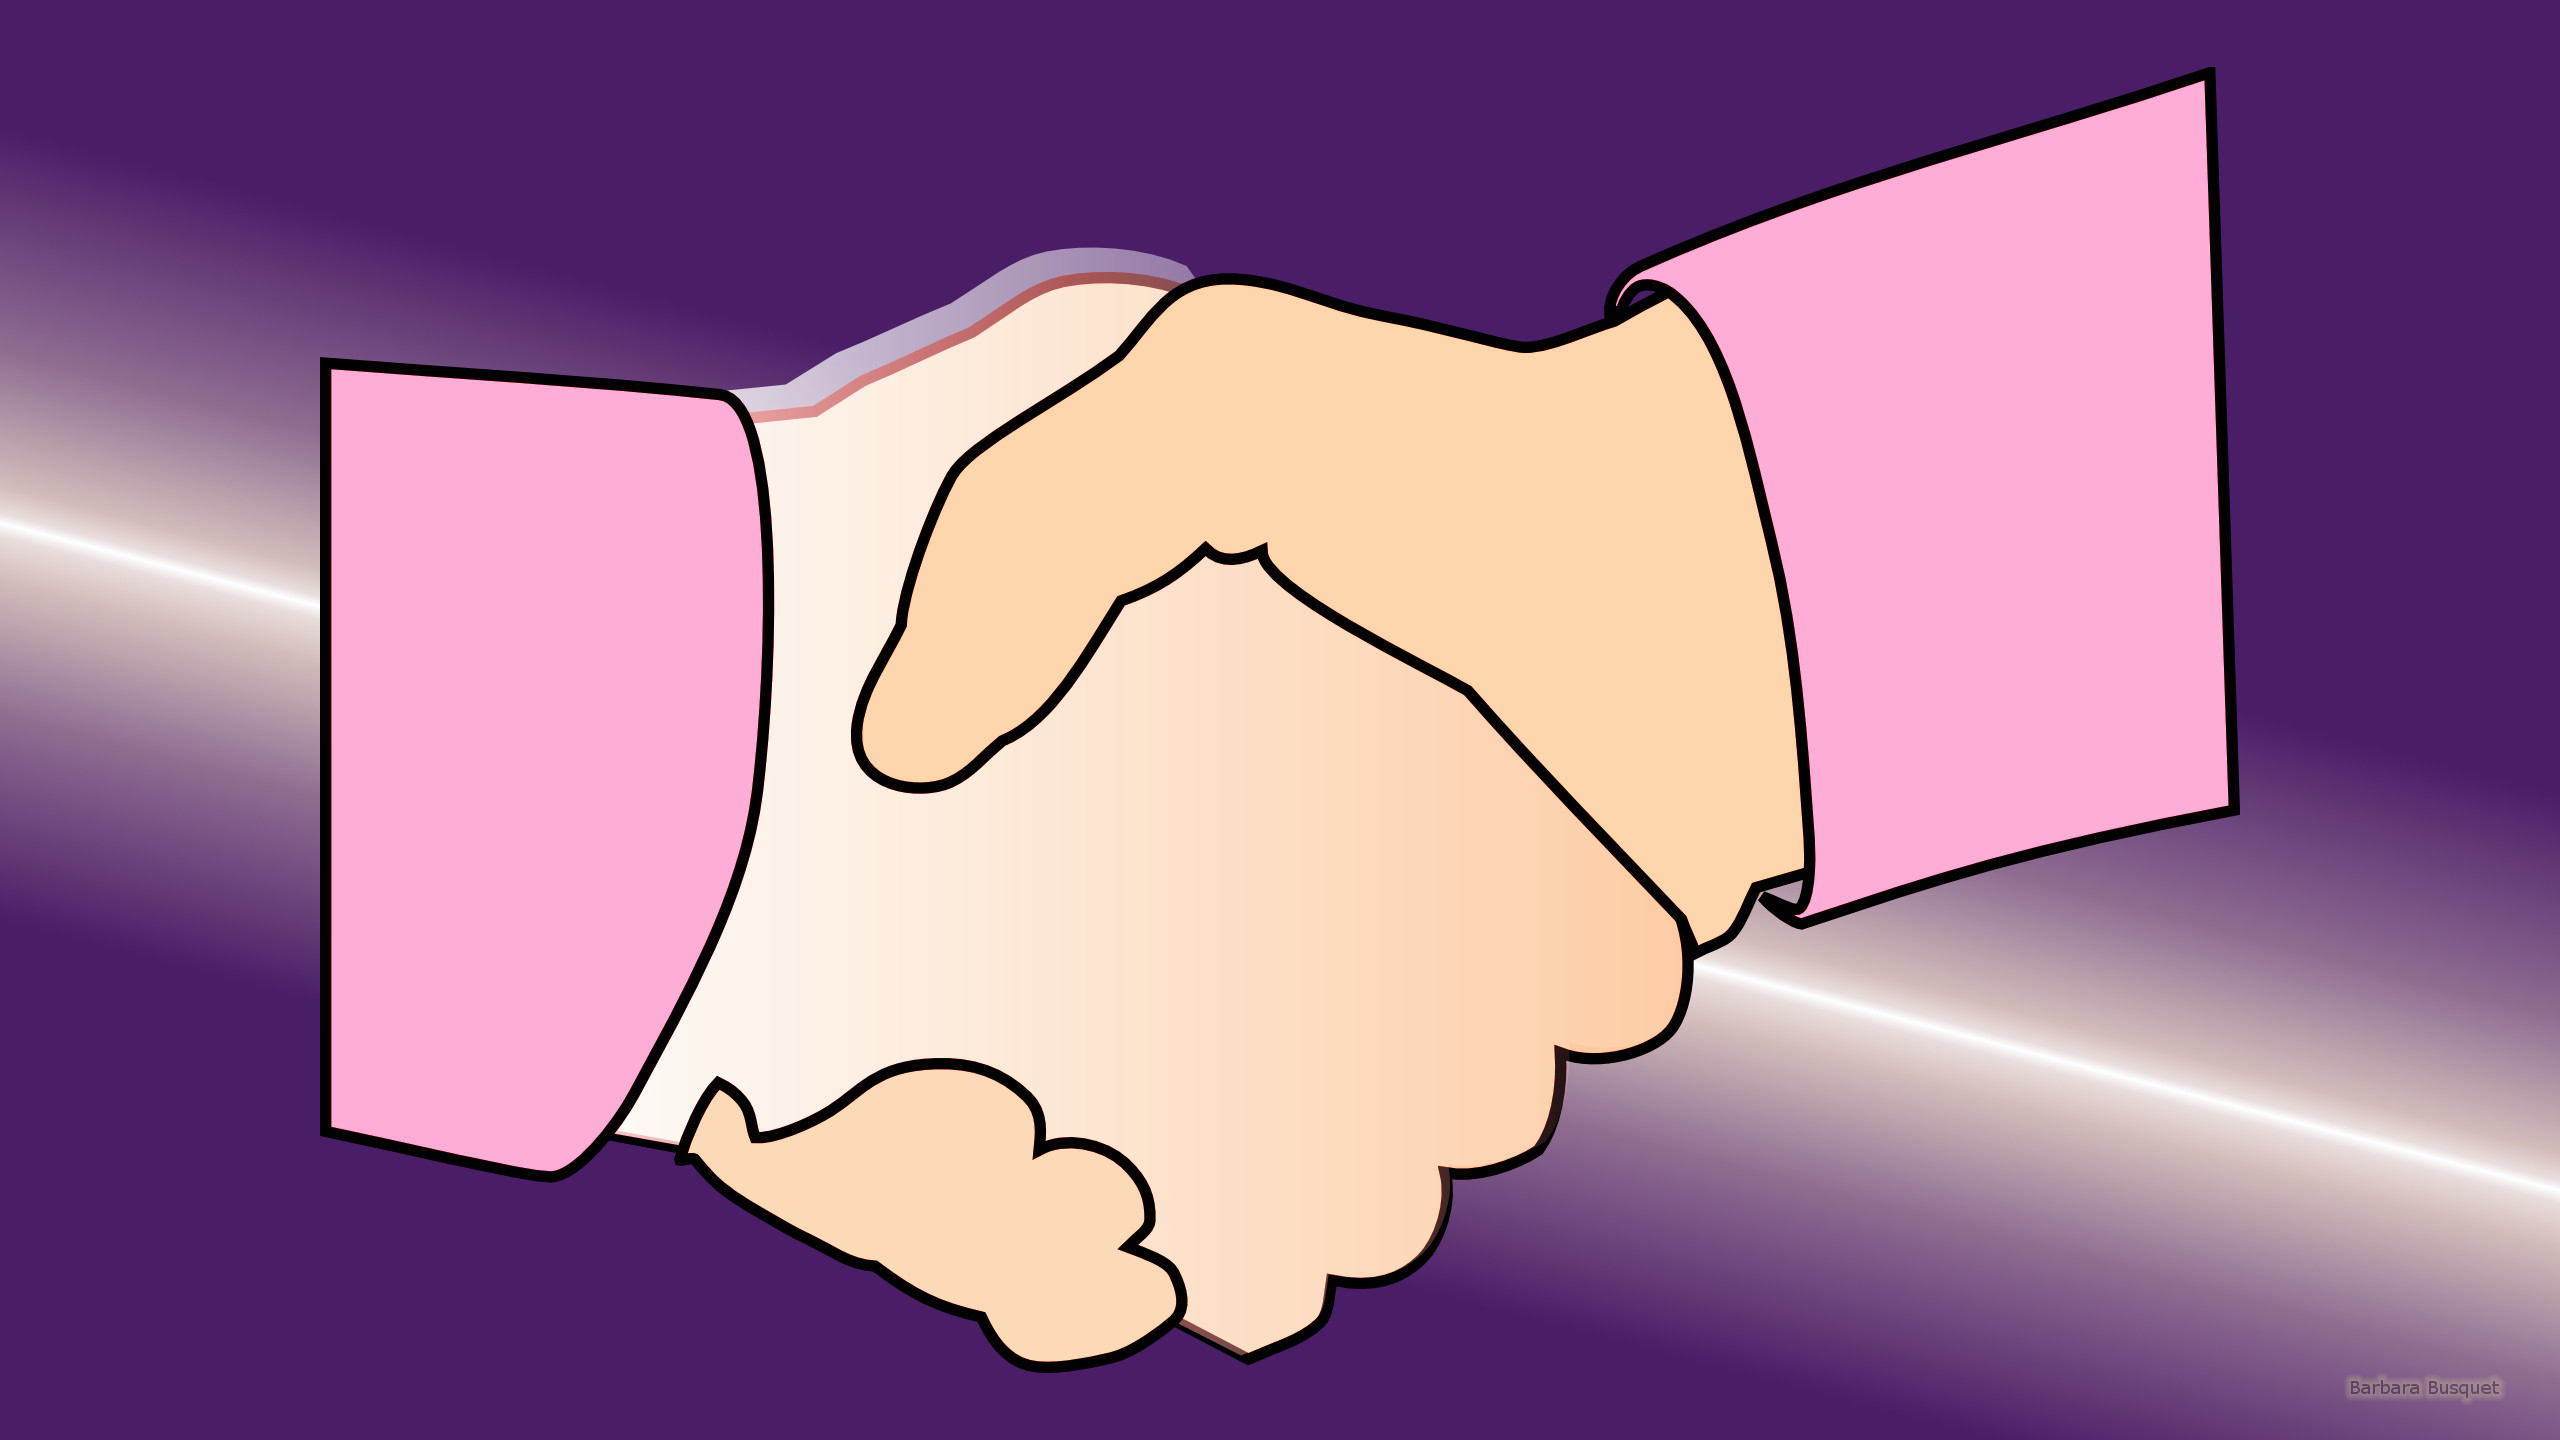 Friendship wallpaper with a handshake. The background is purple with a ...